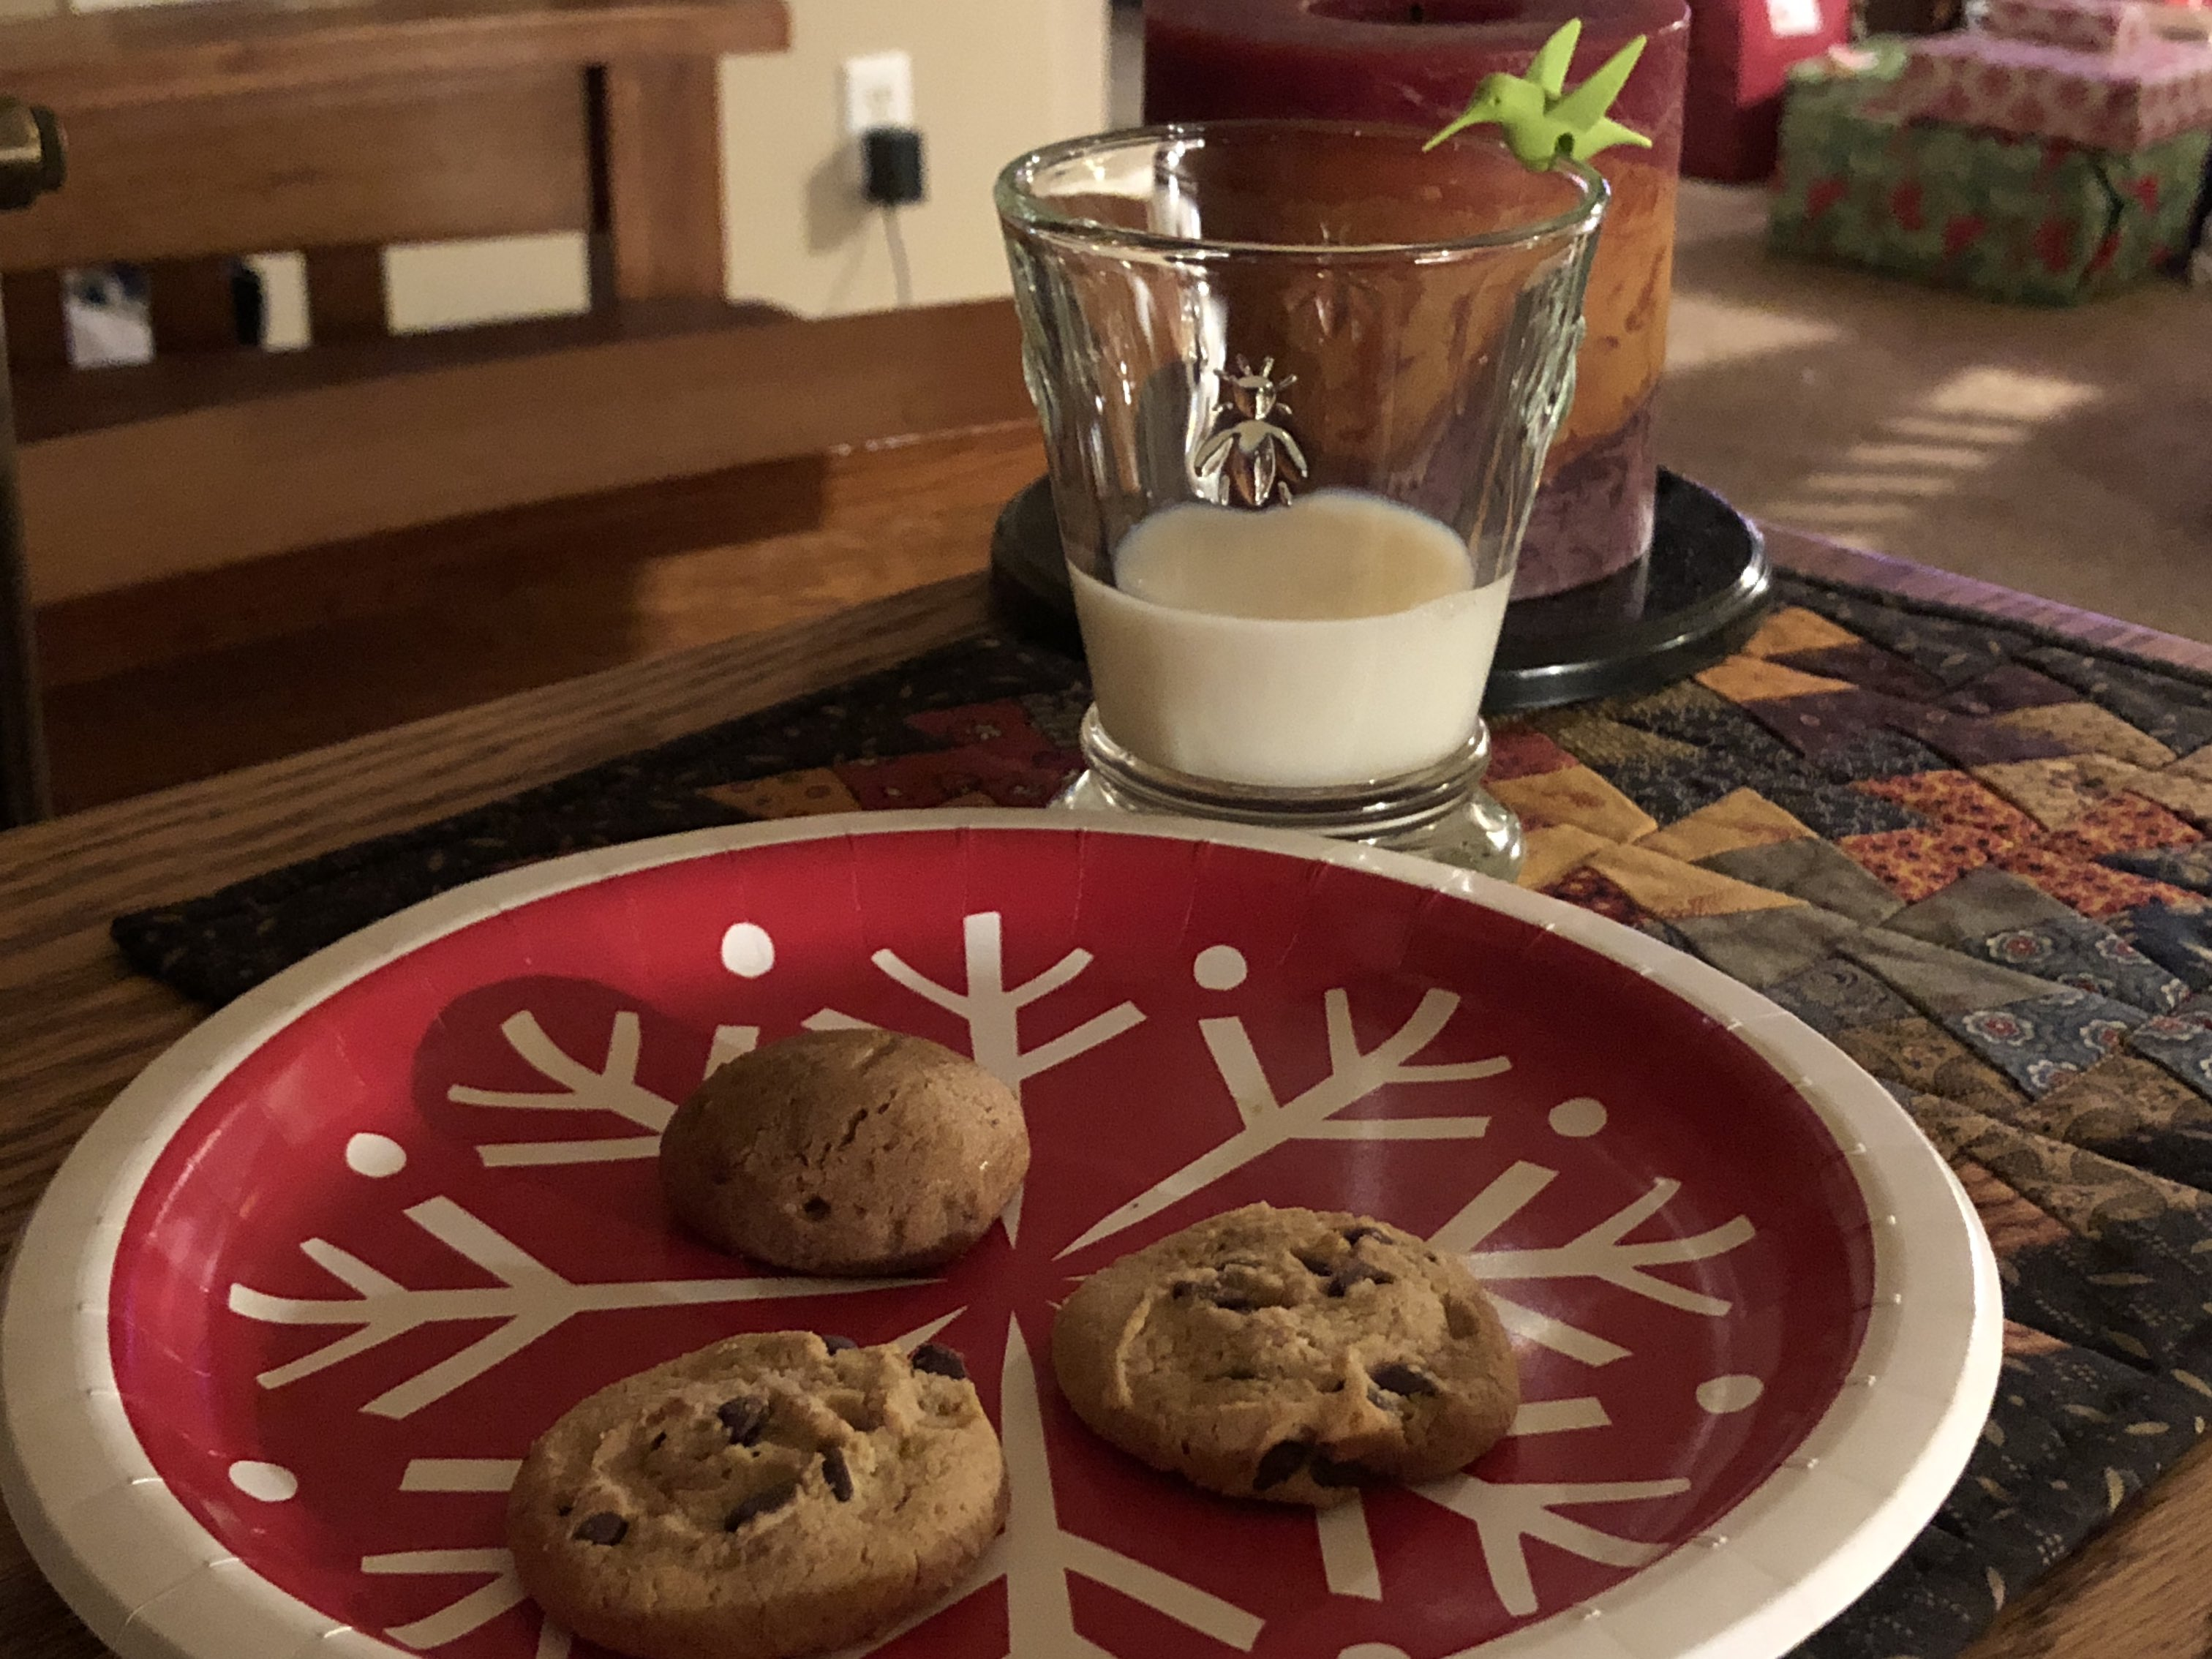 Photo of a glass of milk and small plate of cookies.